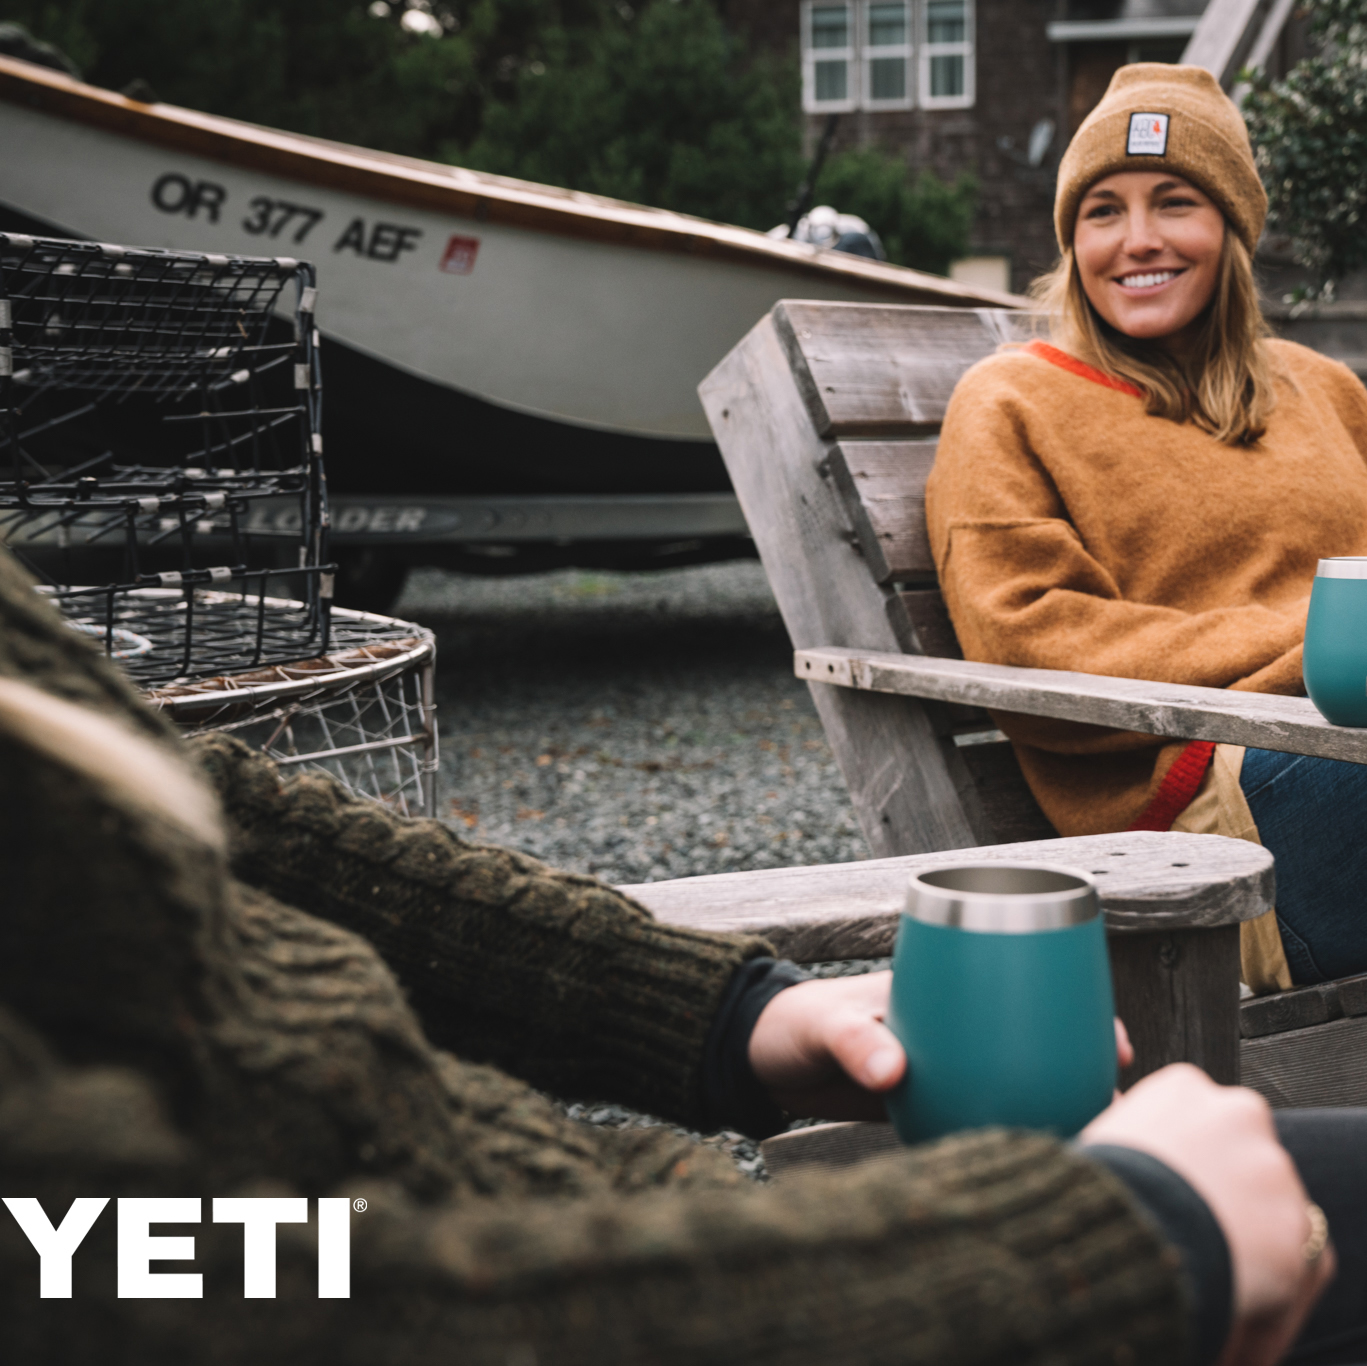 Yeti coolers and drinkware